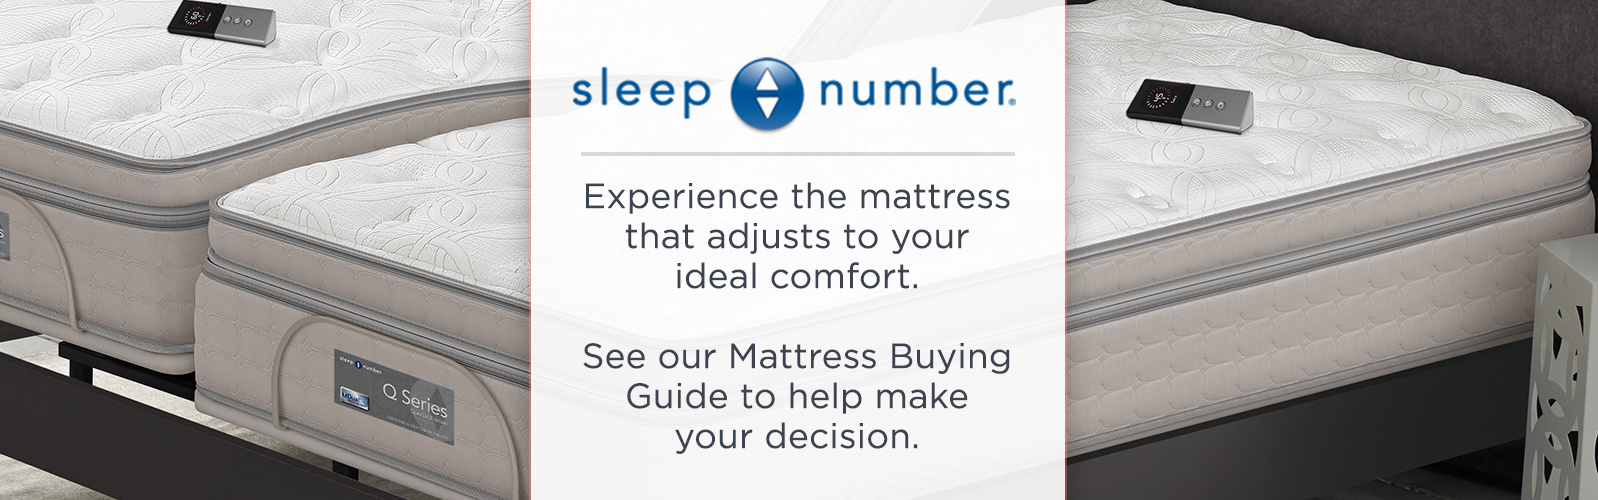 Sleep Number, Experience the mattress that adjusts to your ideal comfort.  See our Mattress Buying Guide to help make your decision.